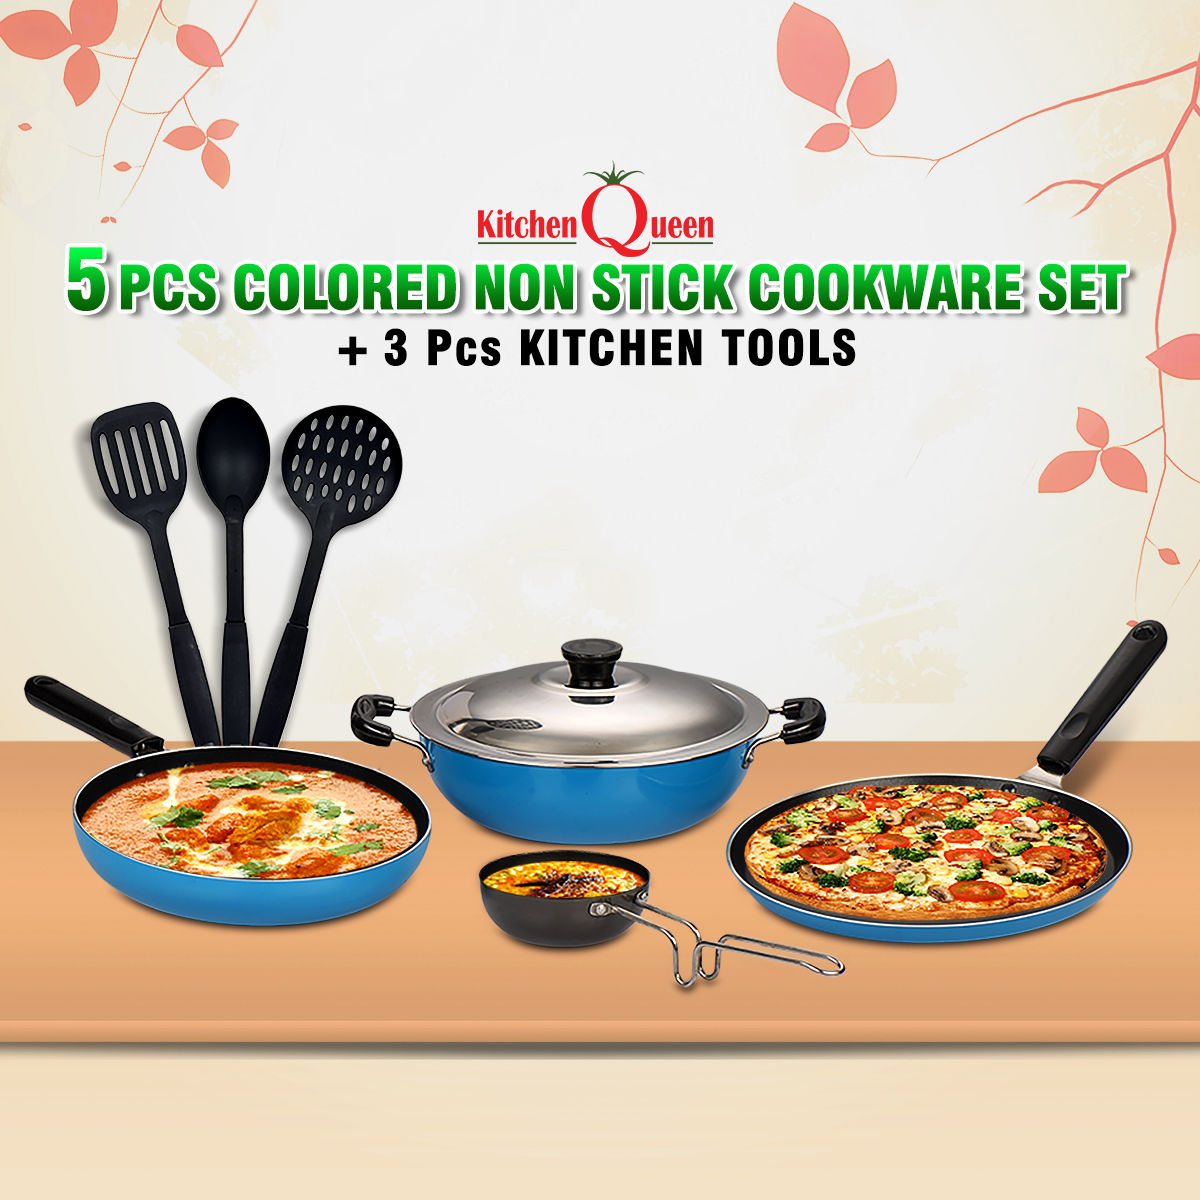 Buy 5 Pcs Colored Non Stick Cookware Set 3 Pcs Kitchen Tools